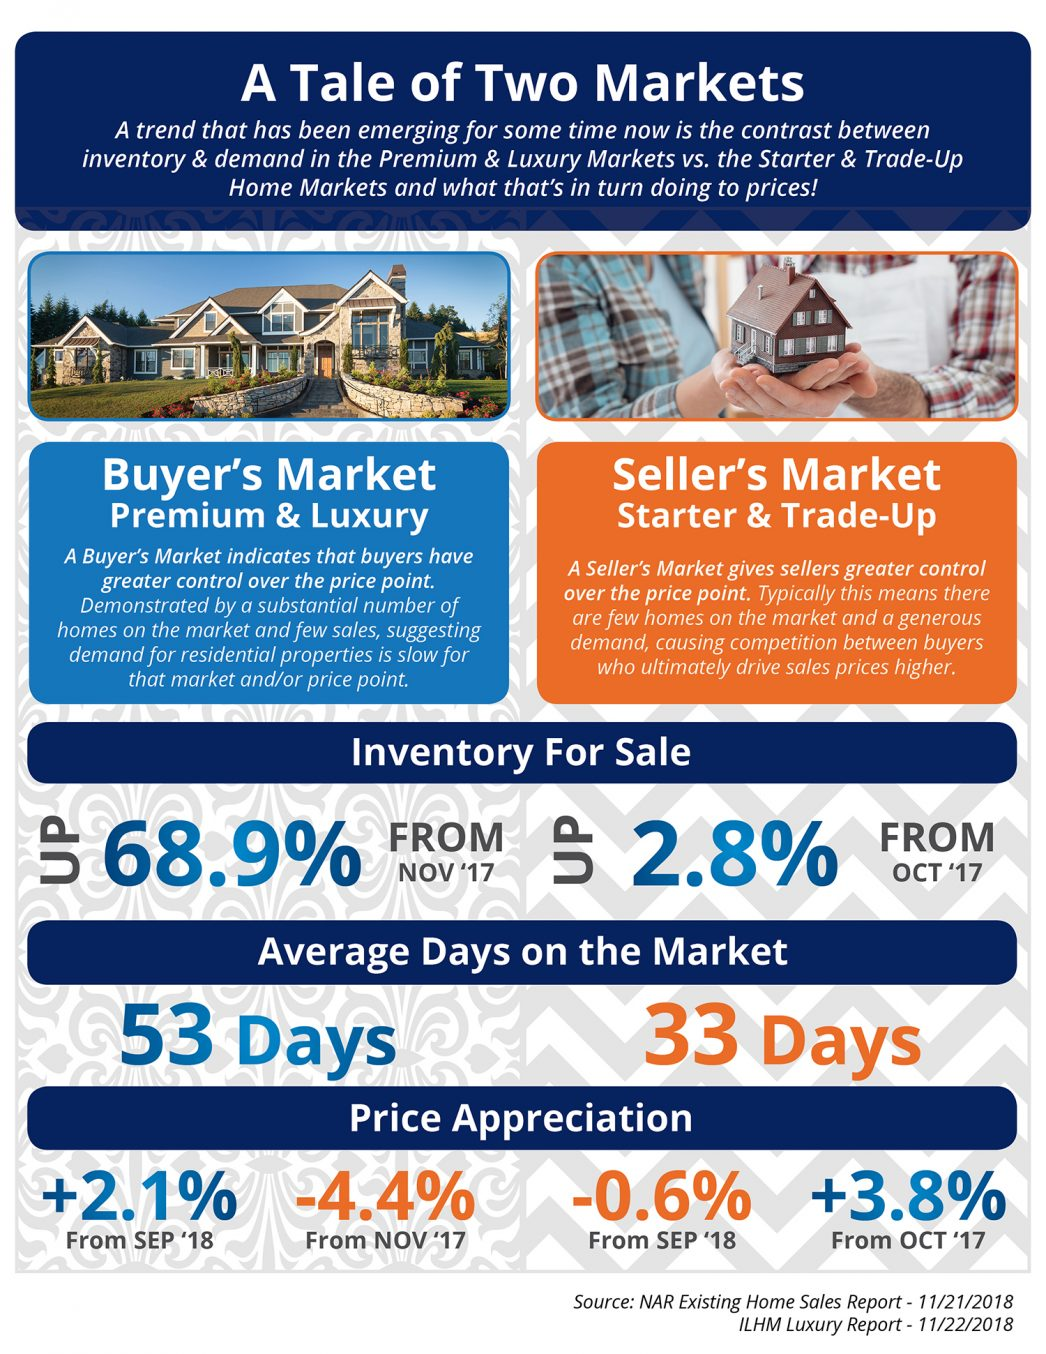 The Tale of Two Markets [INFOGRAPHIC] | MyKCM